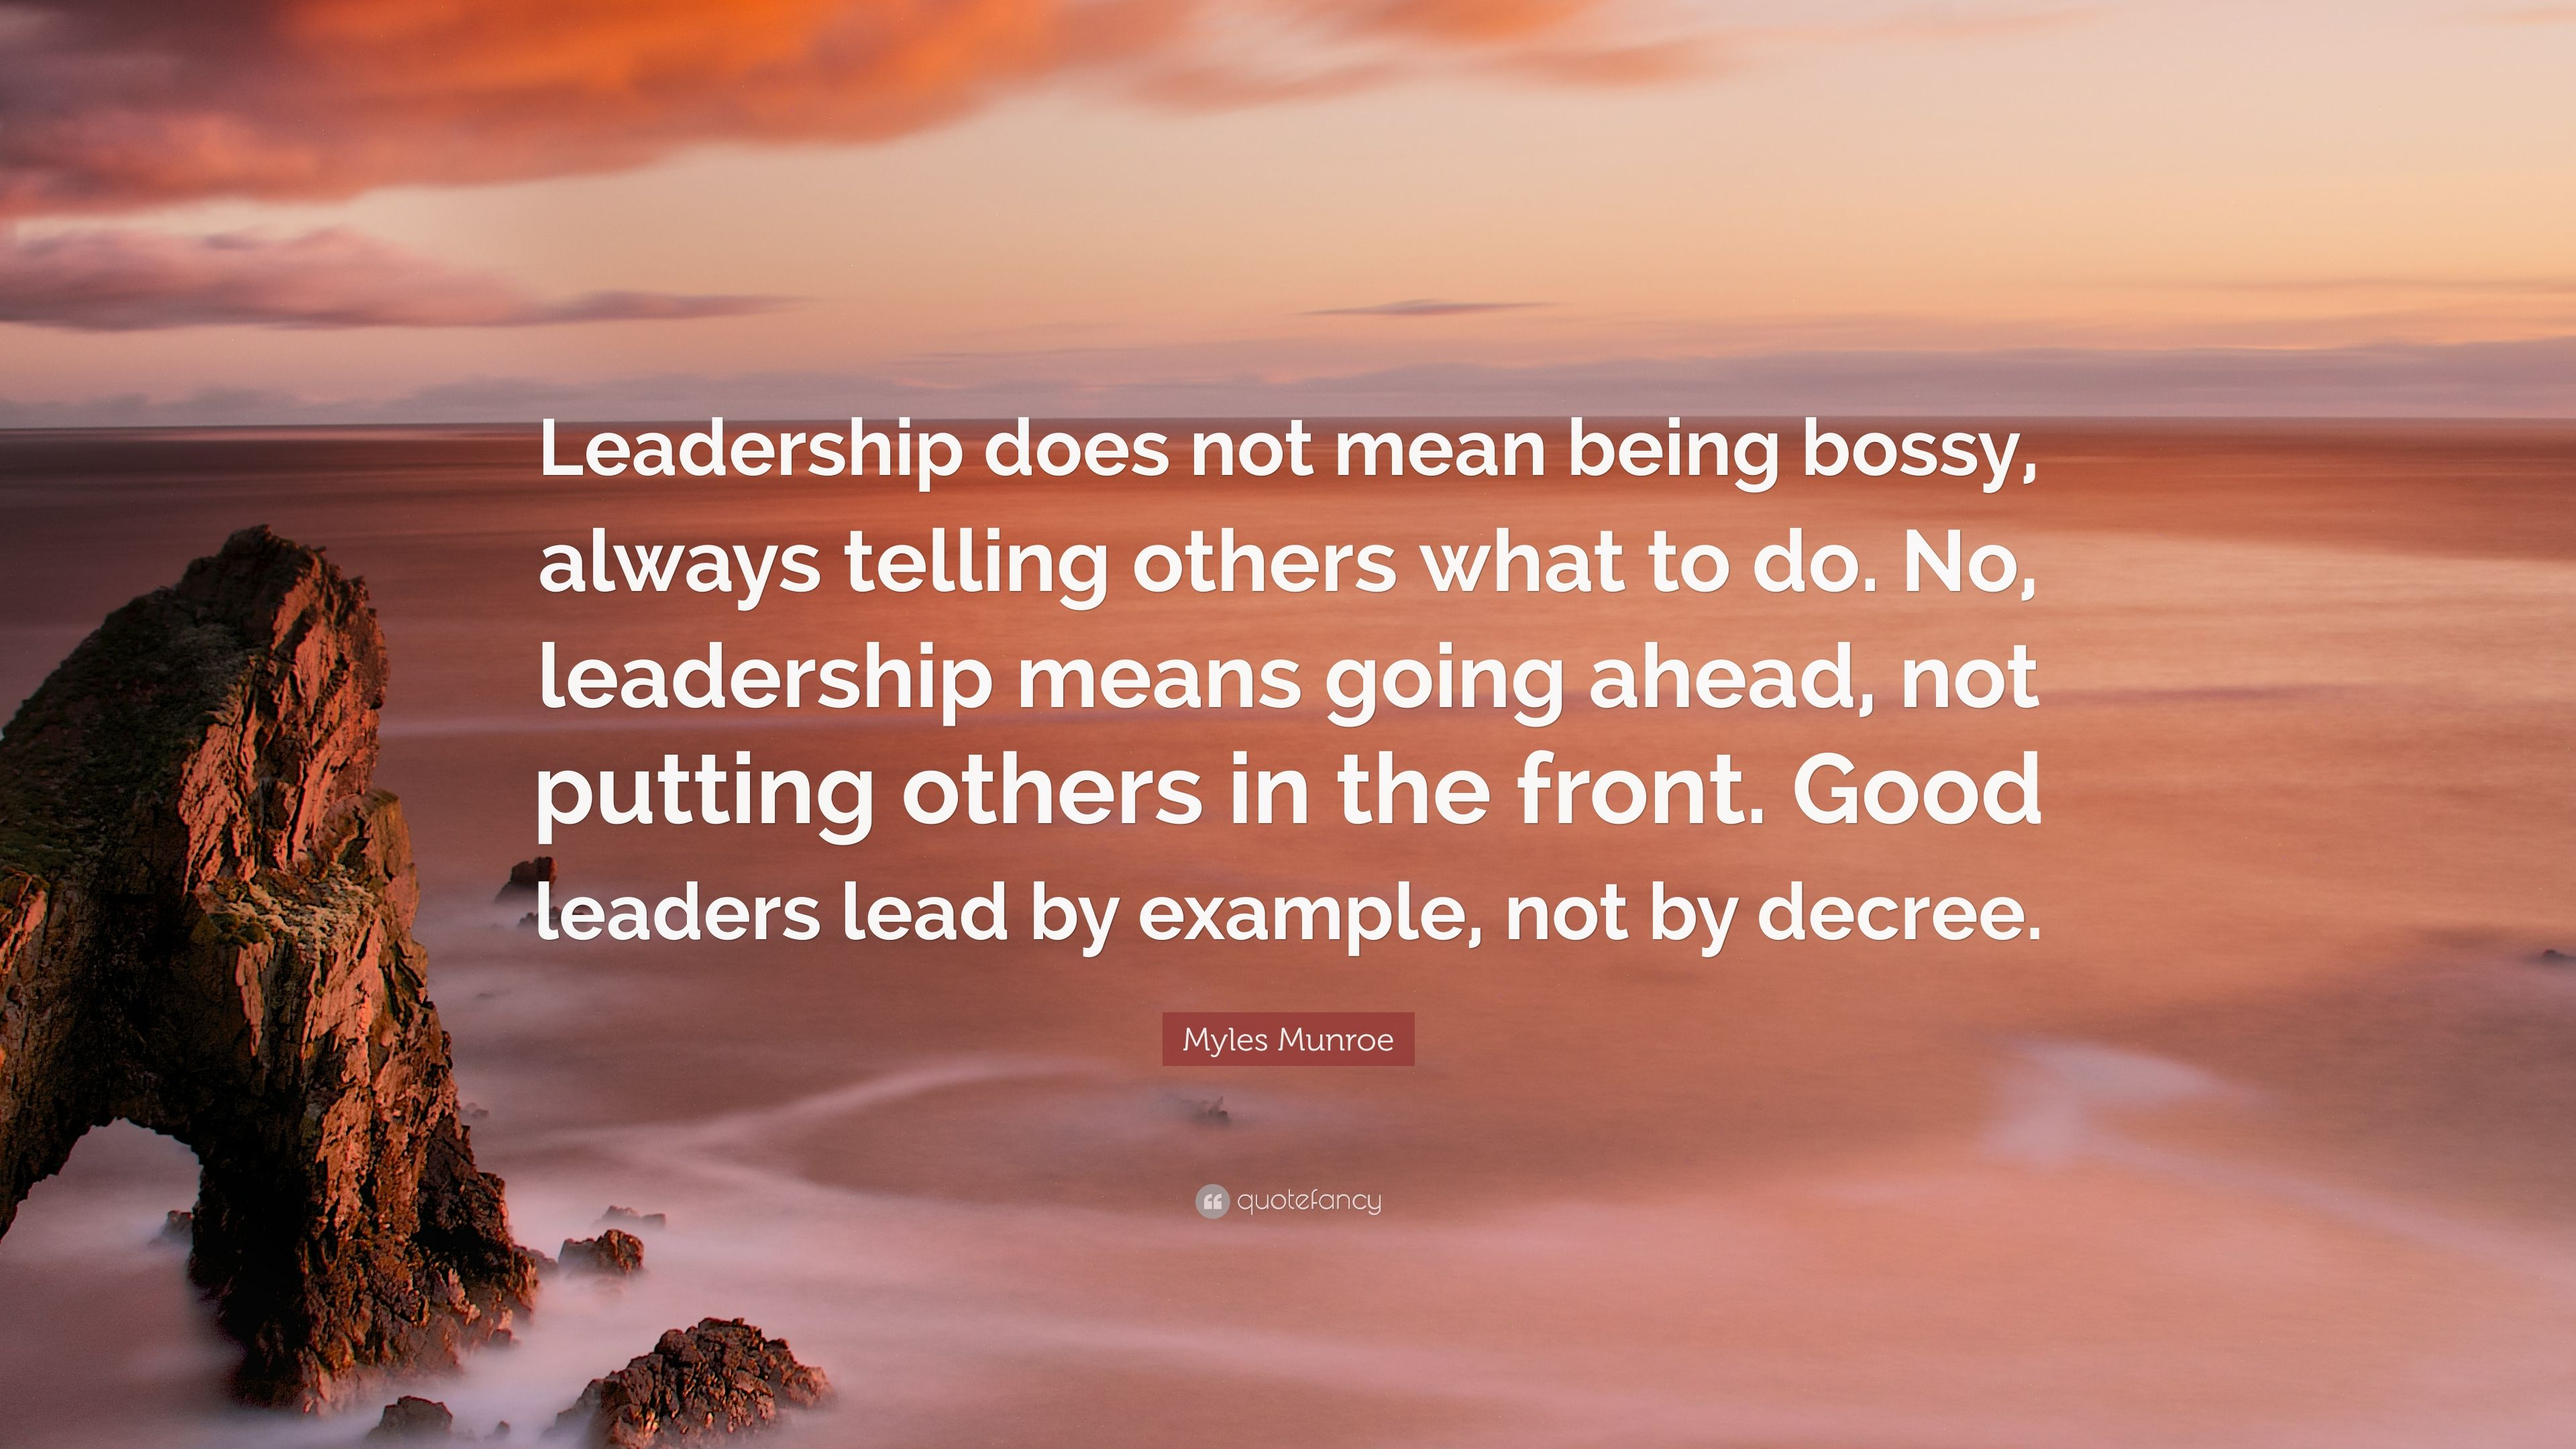 Myles Munroe Quote: Leadership does not mean being bossy